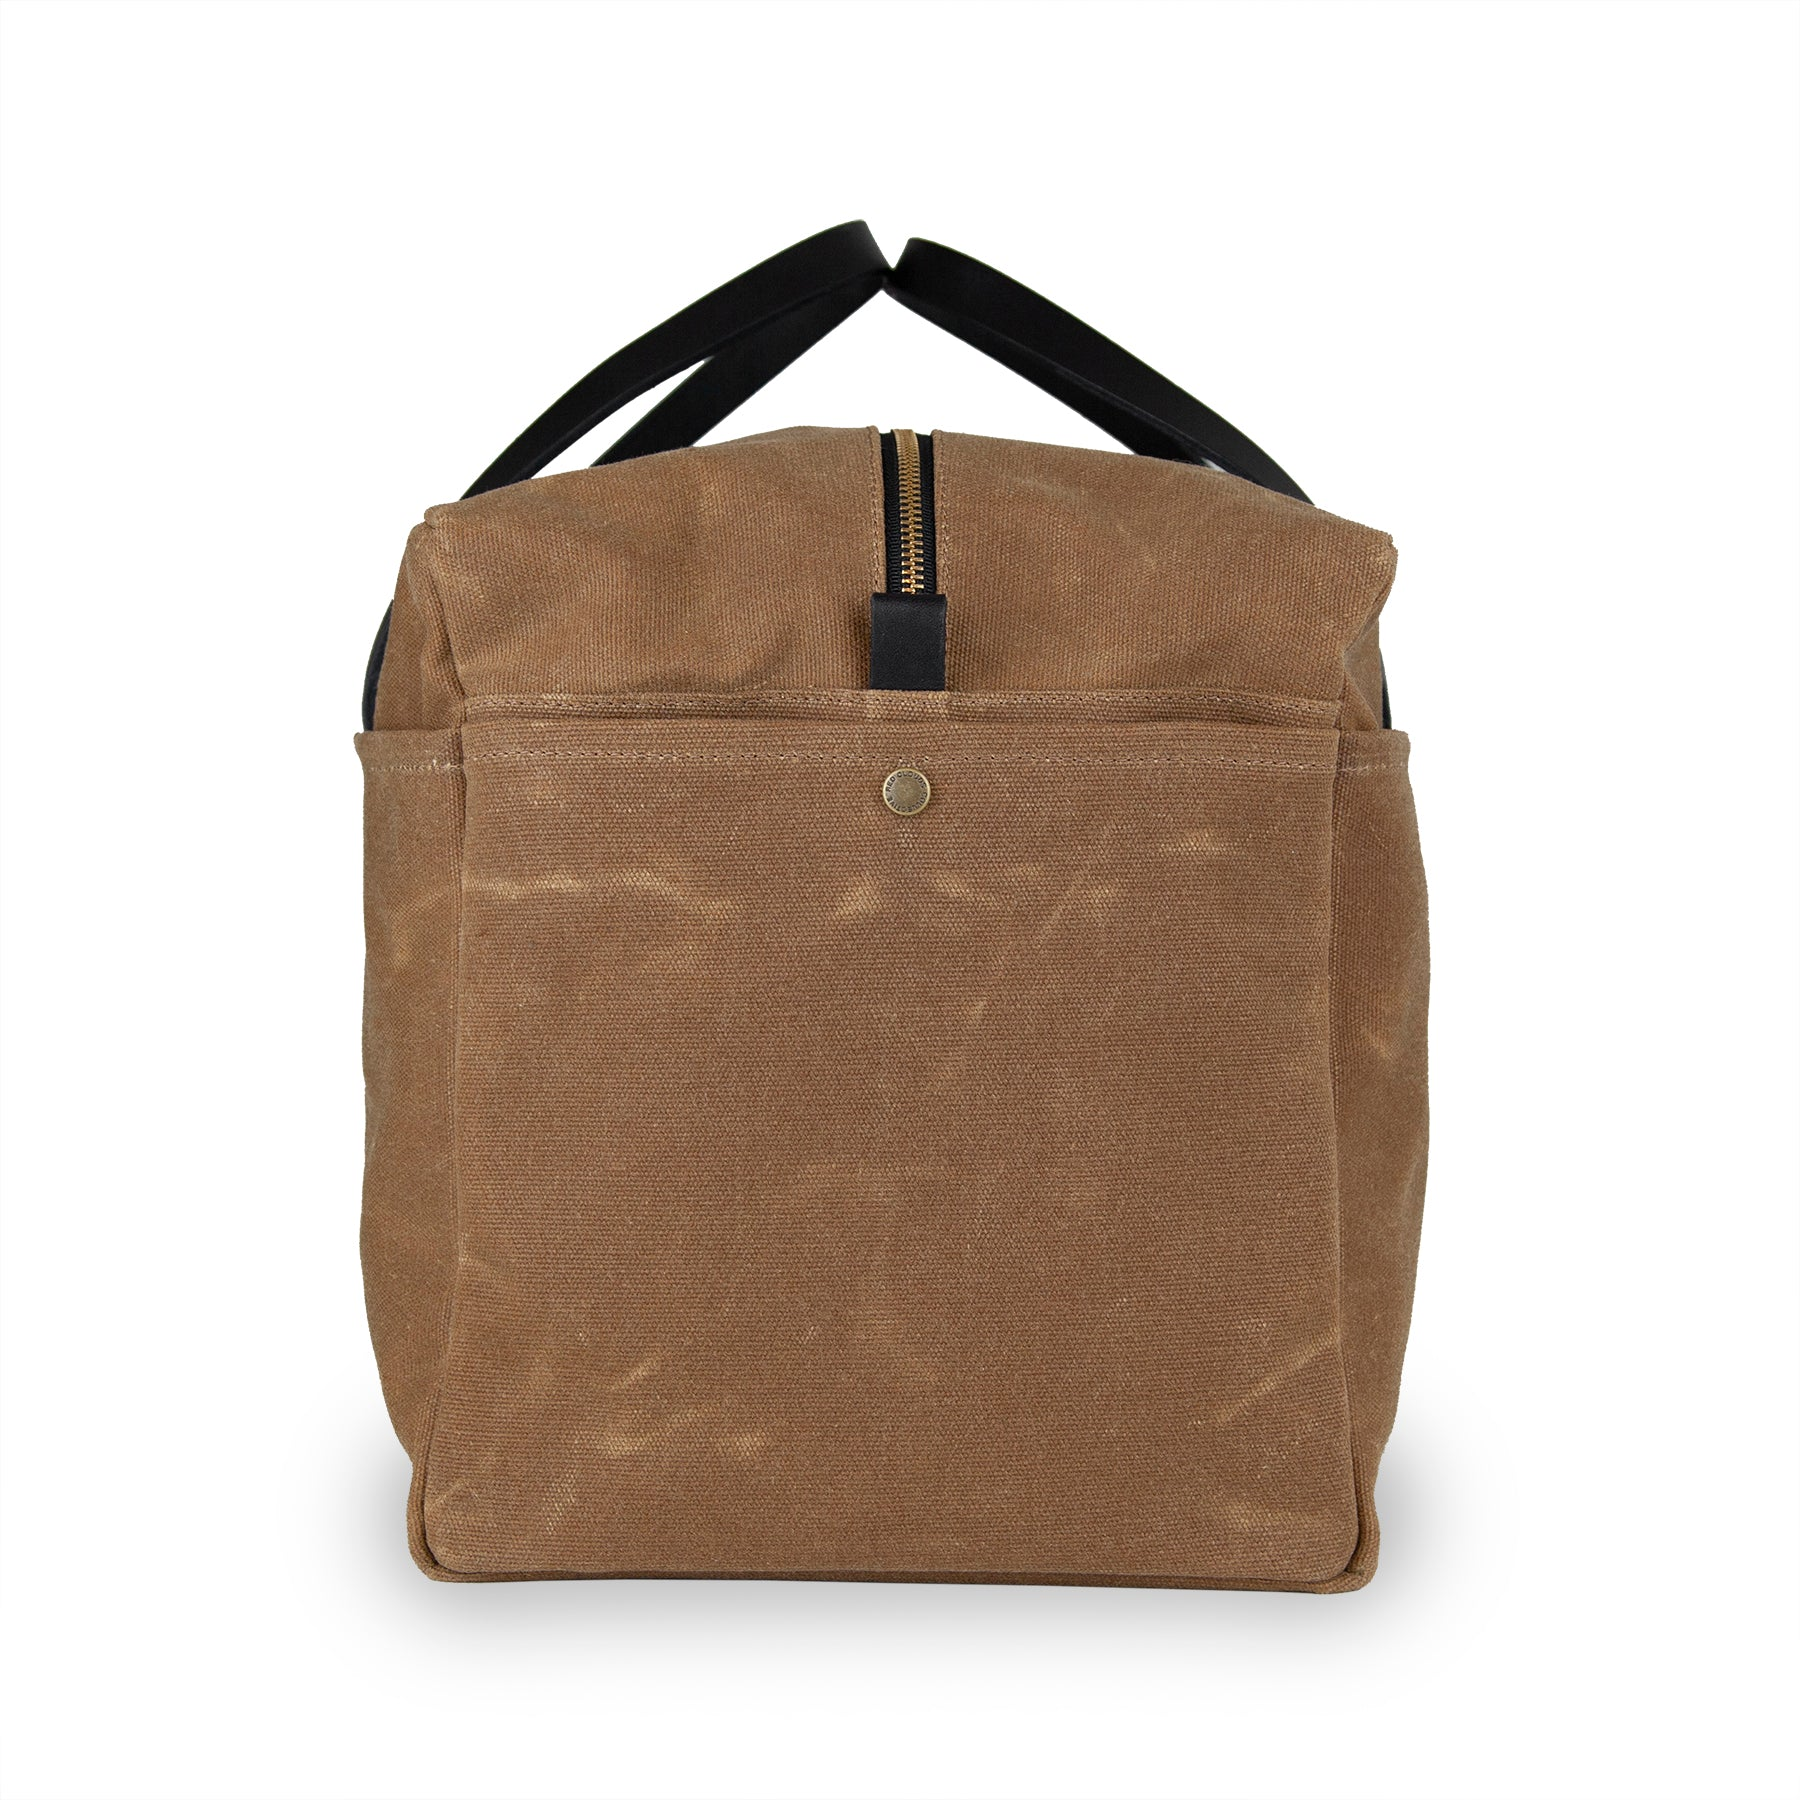 Waxed Canvas Duffle Bag - Brush Brown With Black Leather